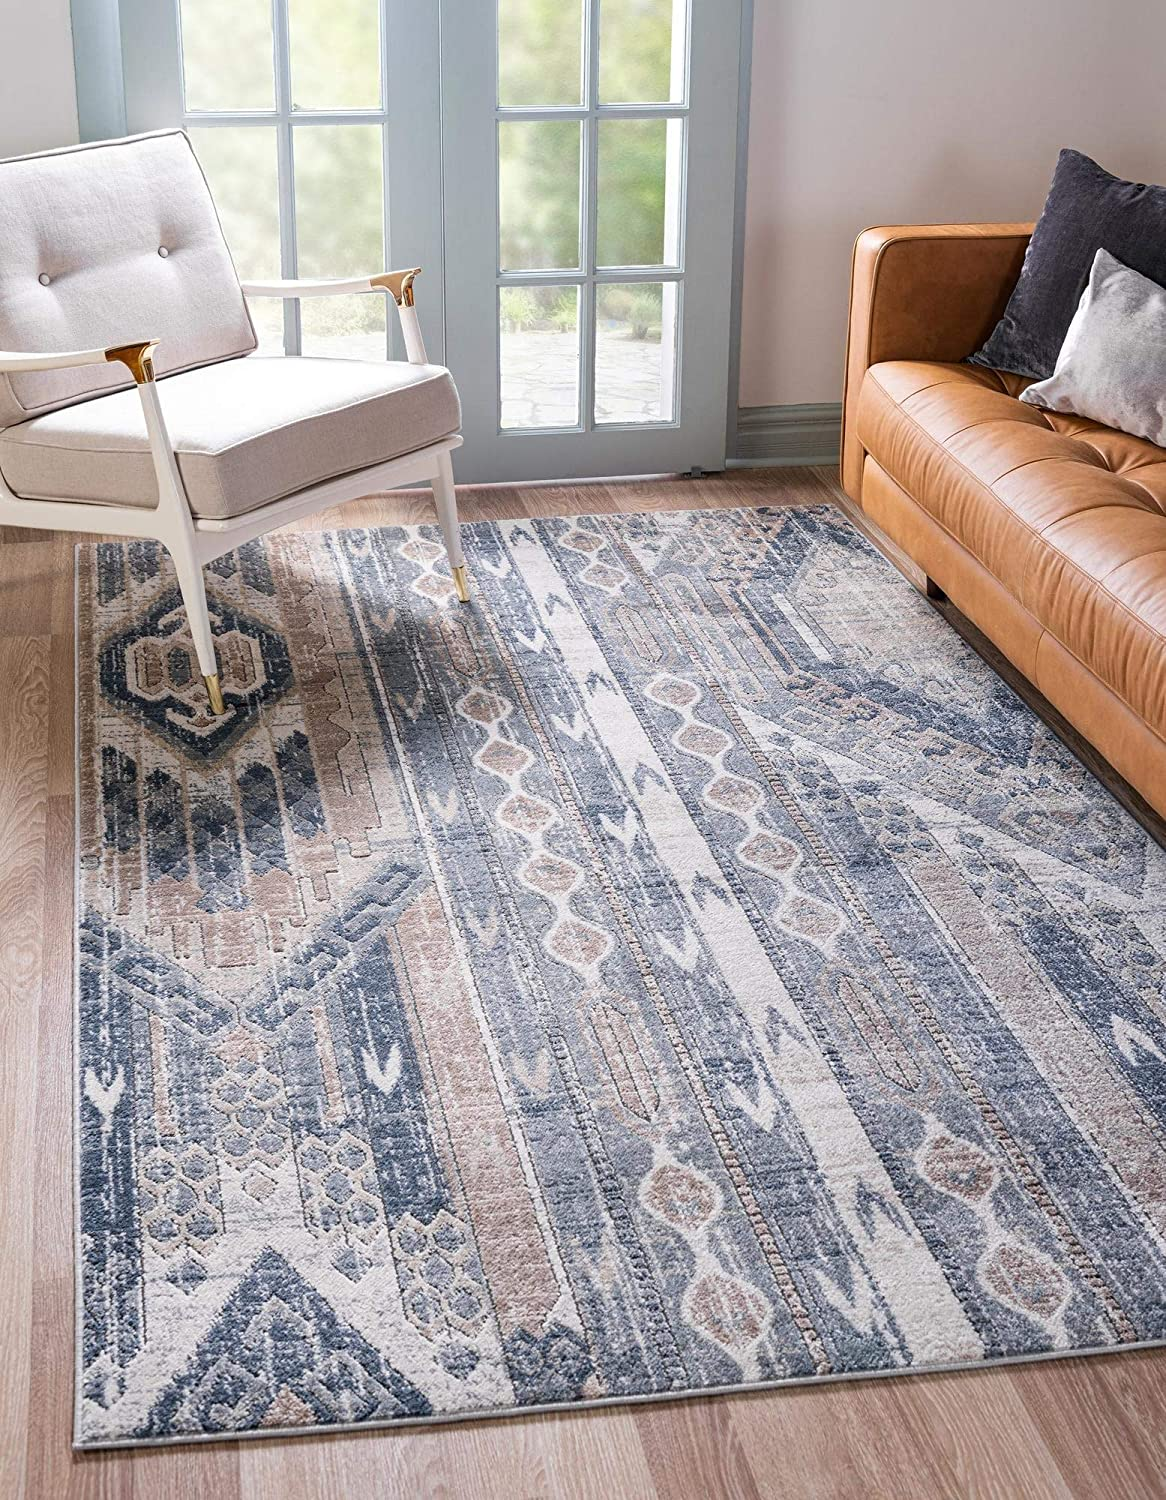 Rugs.com Oregon Collection Rug All stores are sold – 5' Low-Pile Blue Navy Cheap bargain 8' x